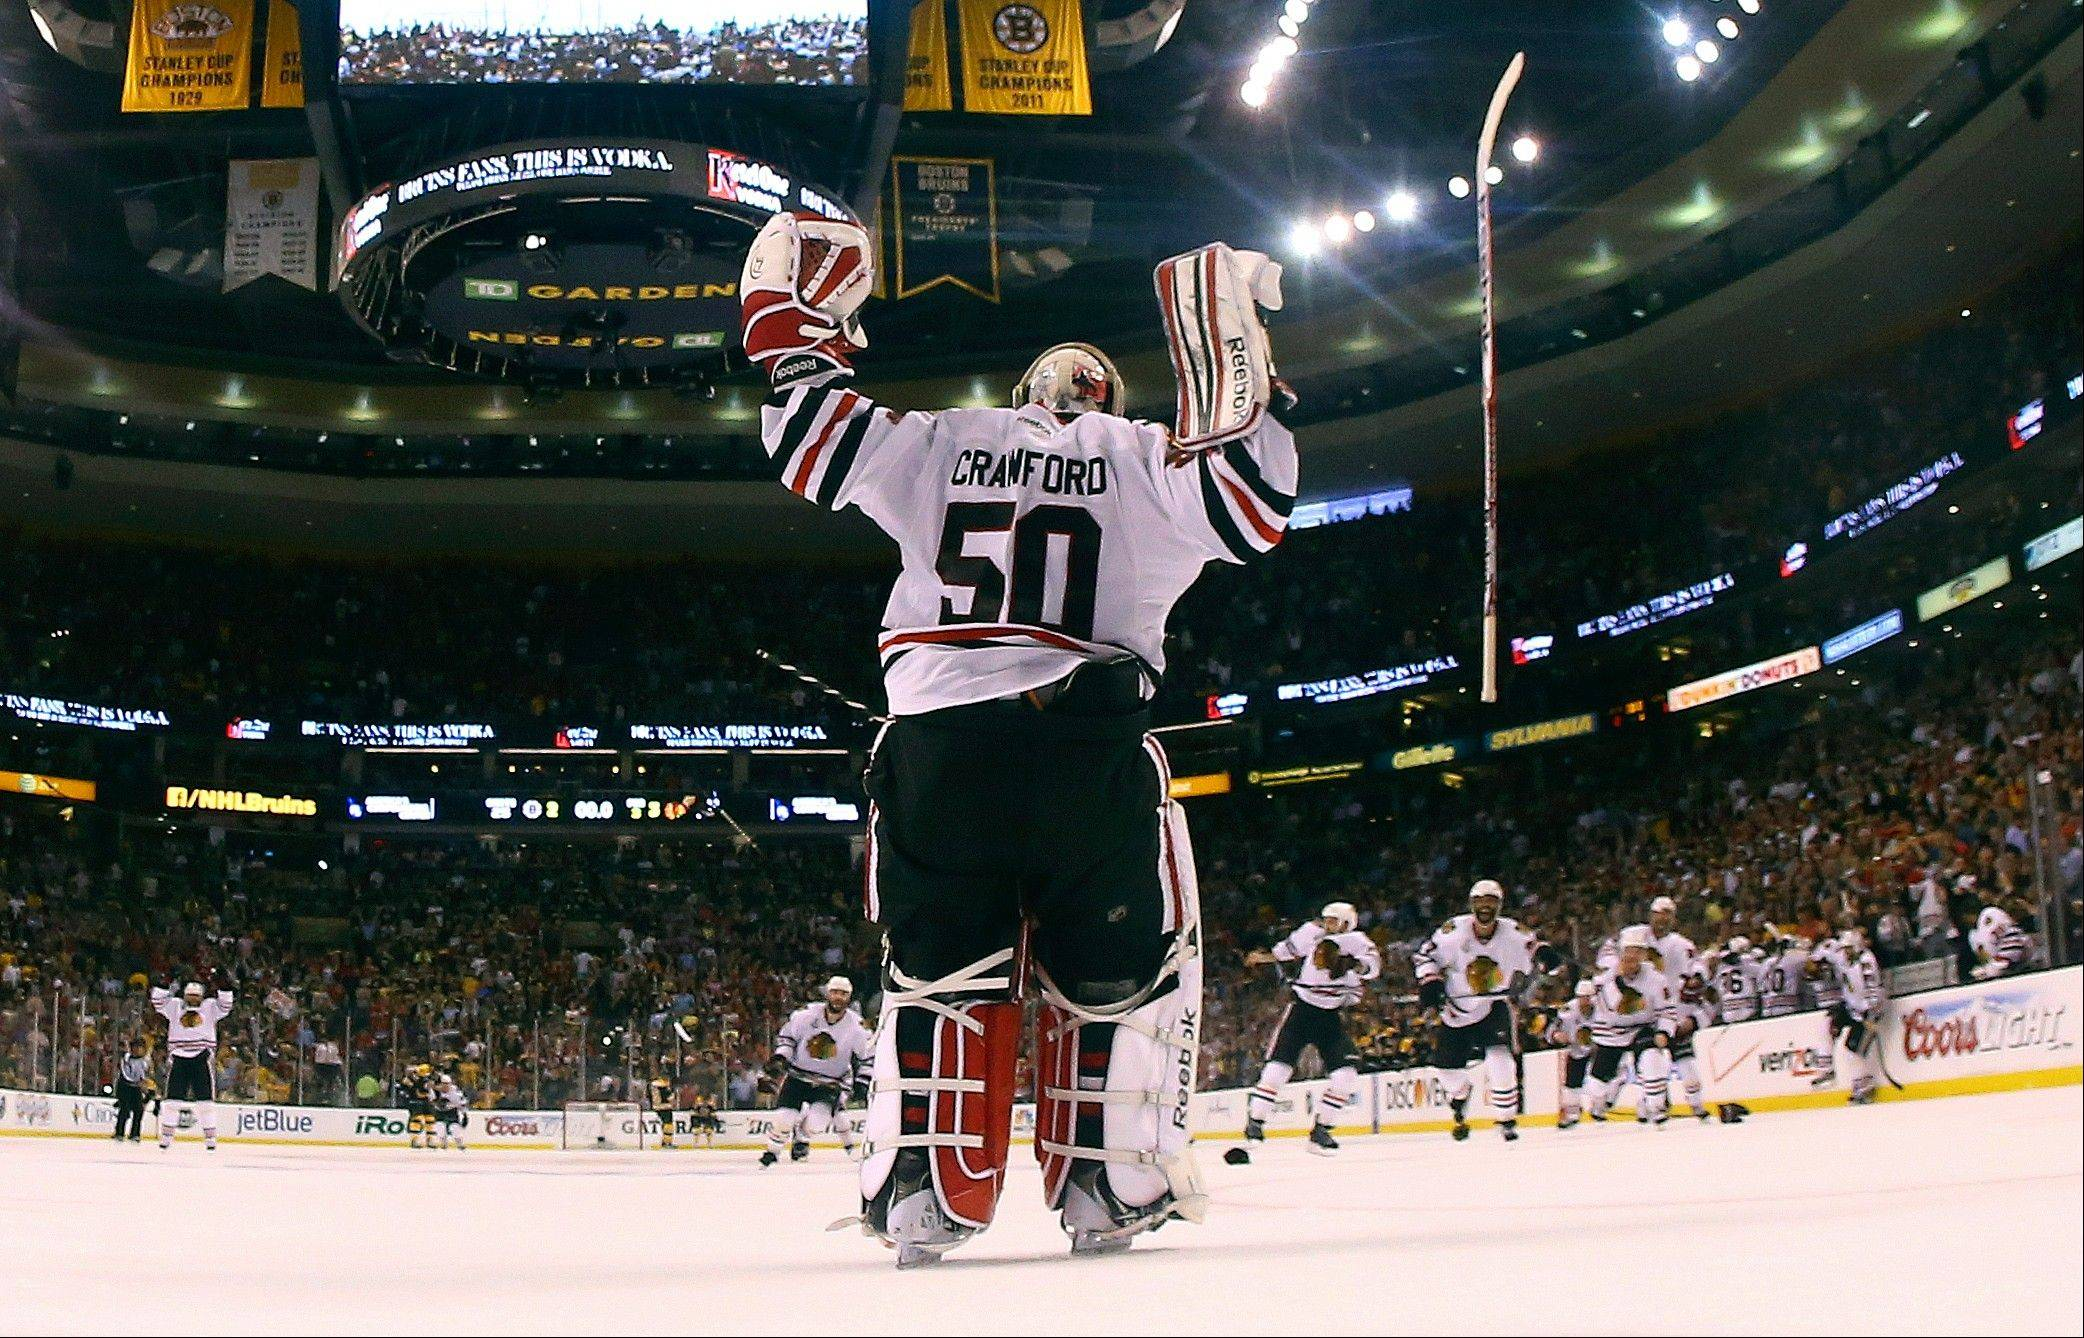 Chicago Blackhawks goalie Corey Crawford celebrates with his teammates after beating the Boston Bruins 3-2 in Game 6 of the Stanley Cup Finals on June 24. He agreed to a $36 million contract extension with the Hawks on Monday.